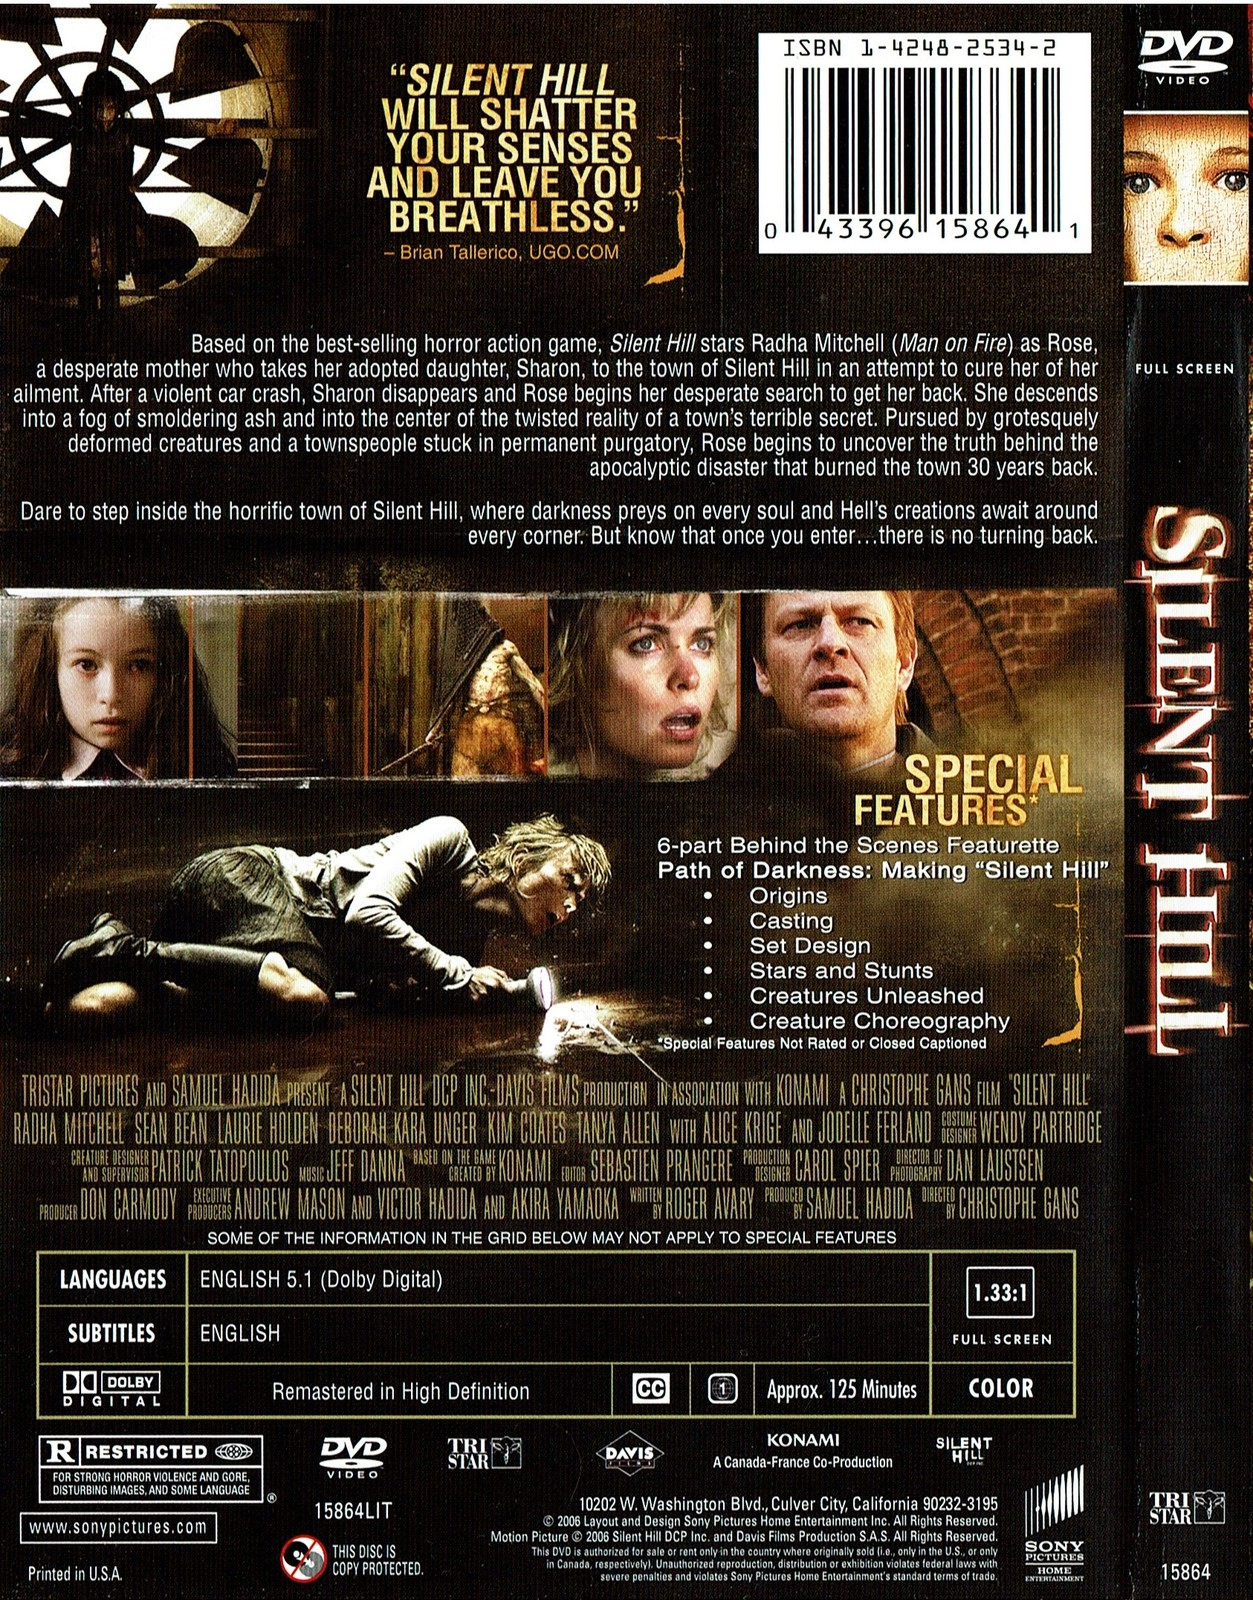 Silent Hill, DVD, 2006, Horror, Full Screen